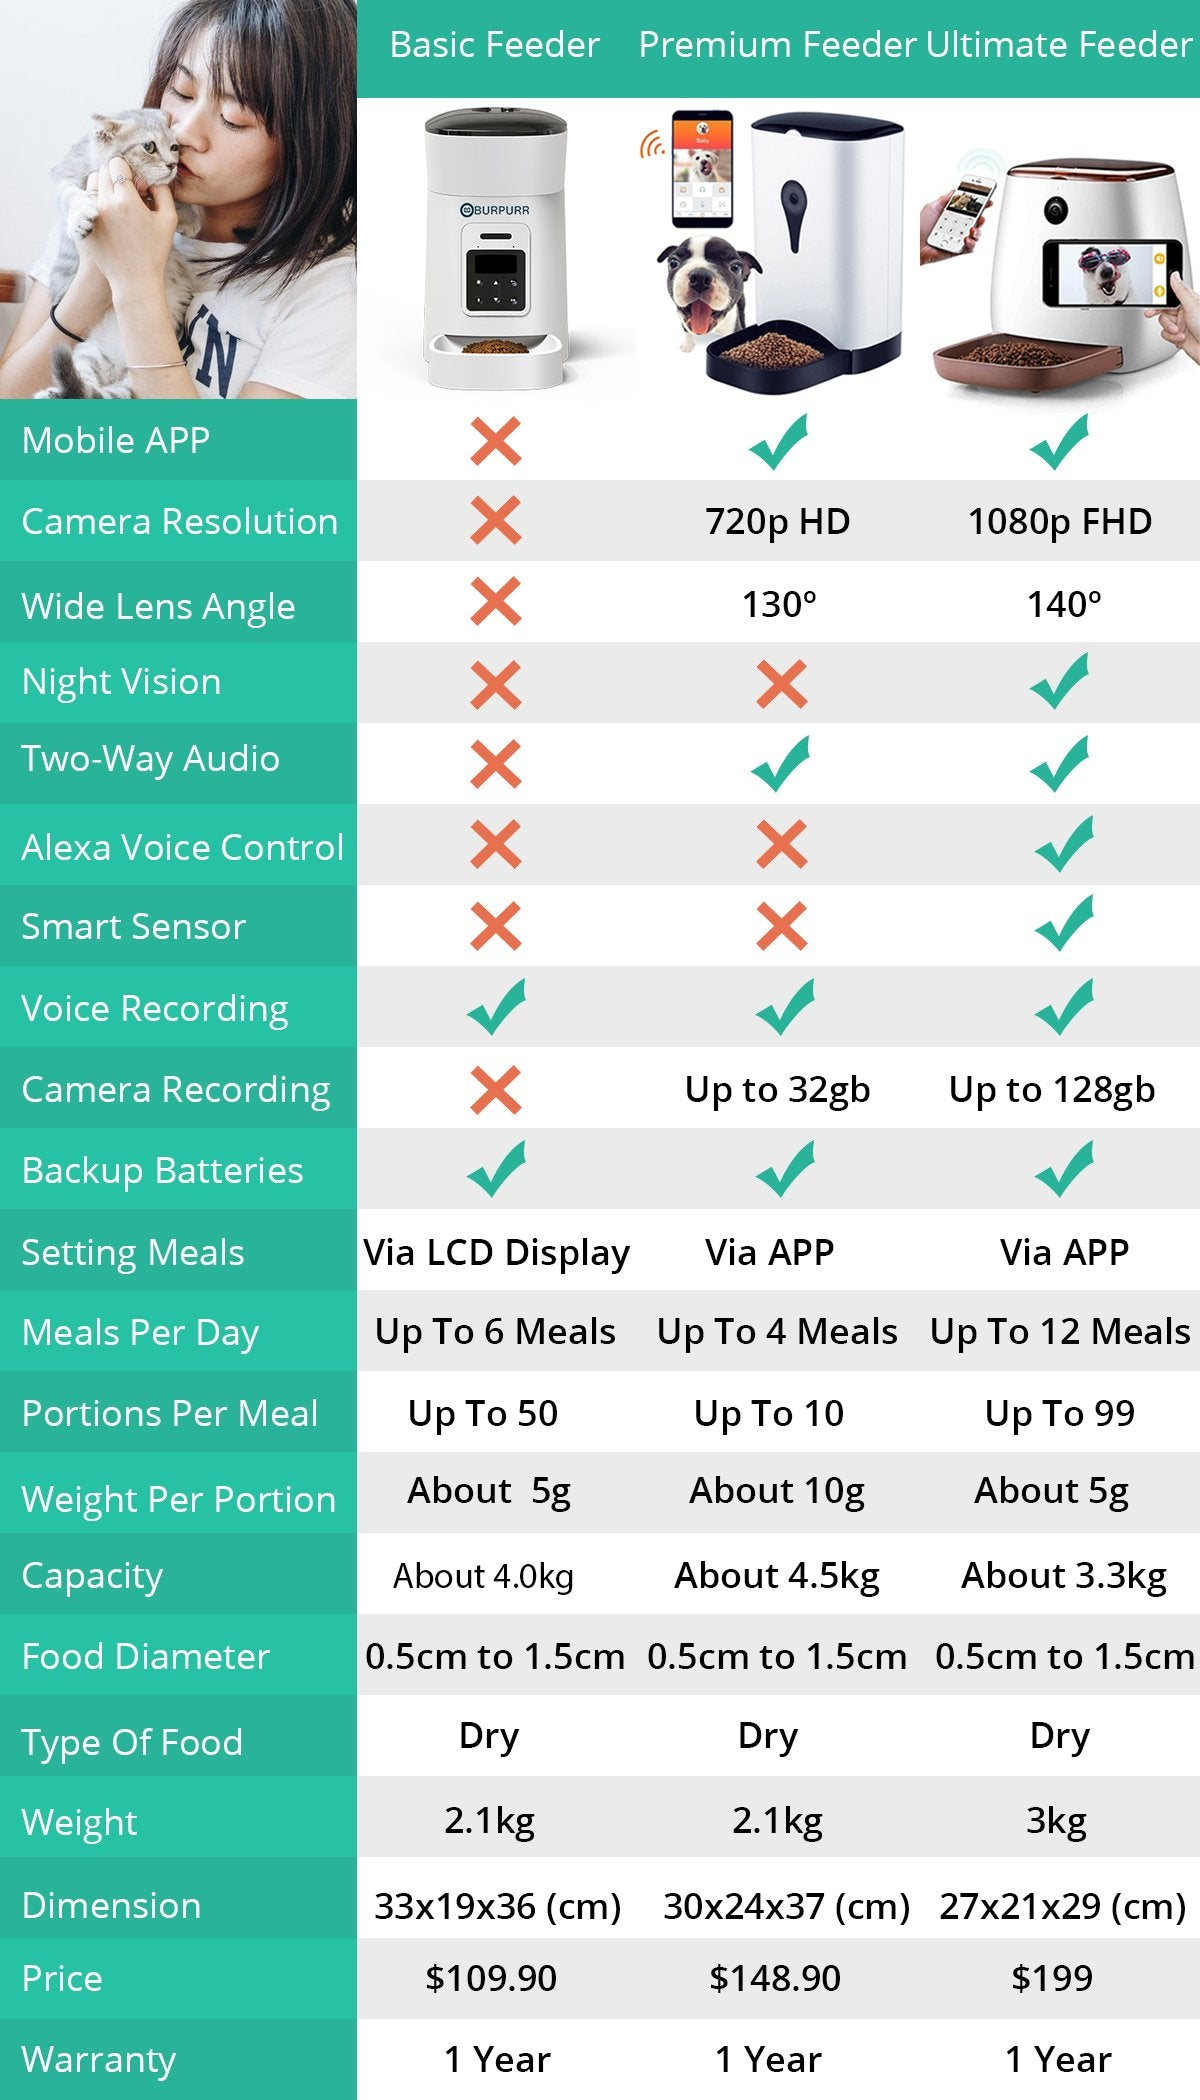 Basic vs Premium vs Ultimate Pet Feeder